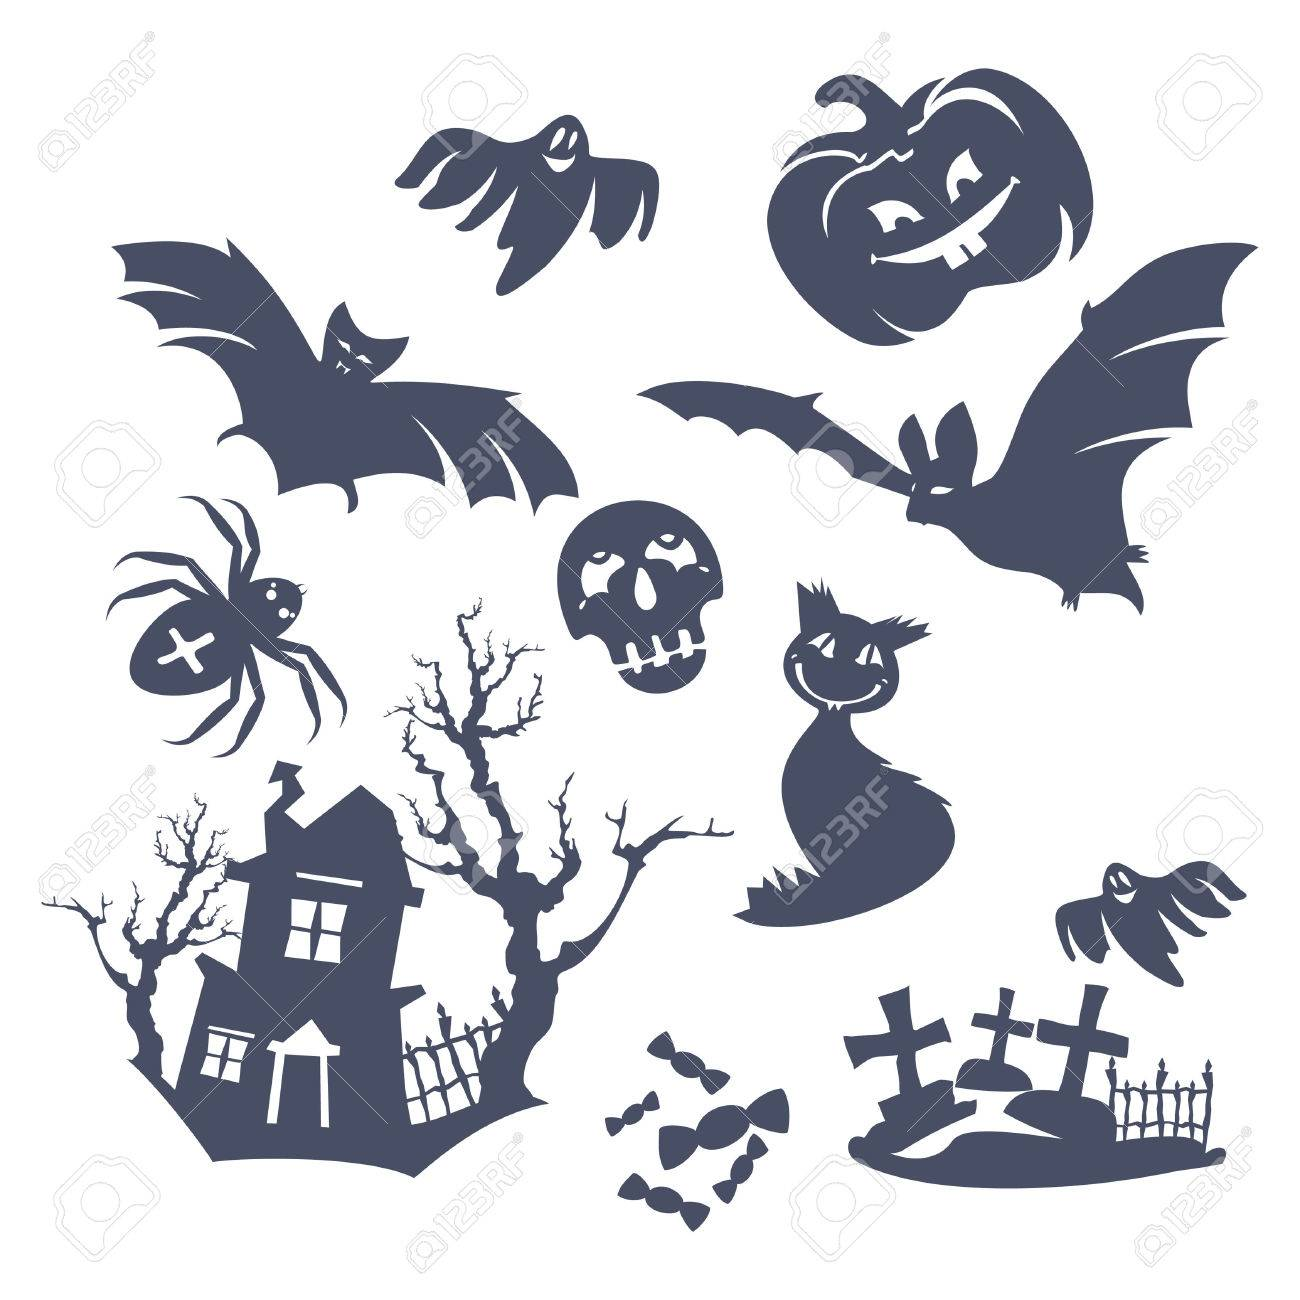 Halloween decoration clipart - Set Of Different Halloween Icons Stock Vector 7920135